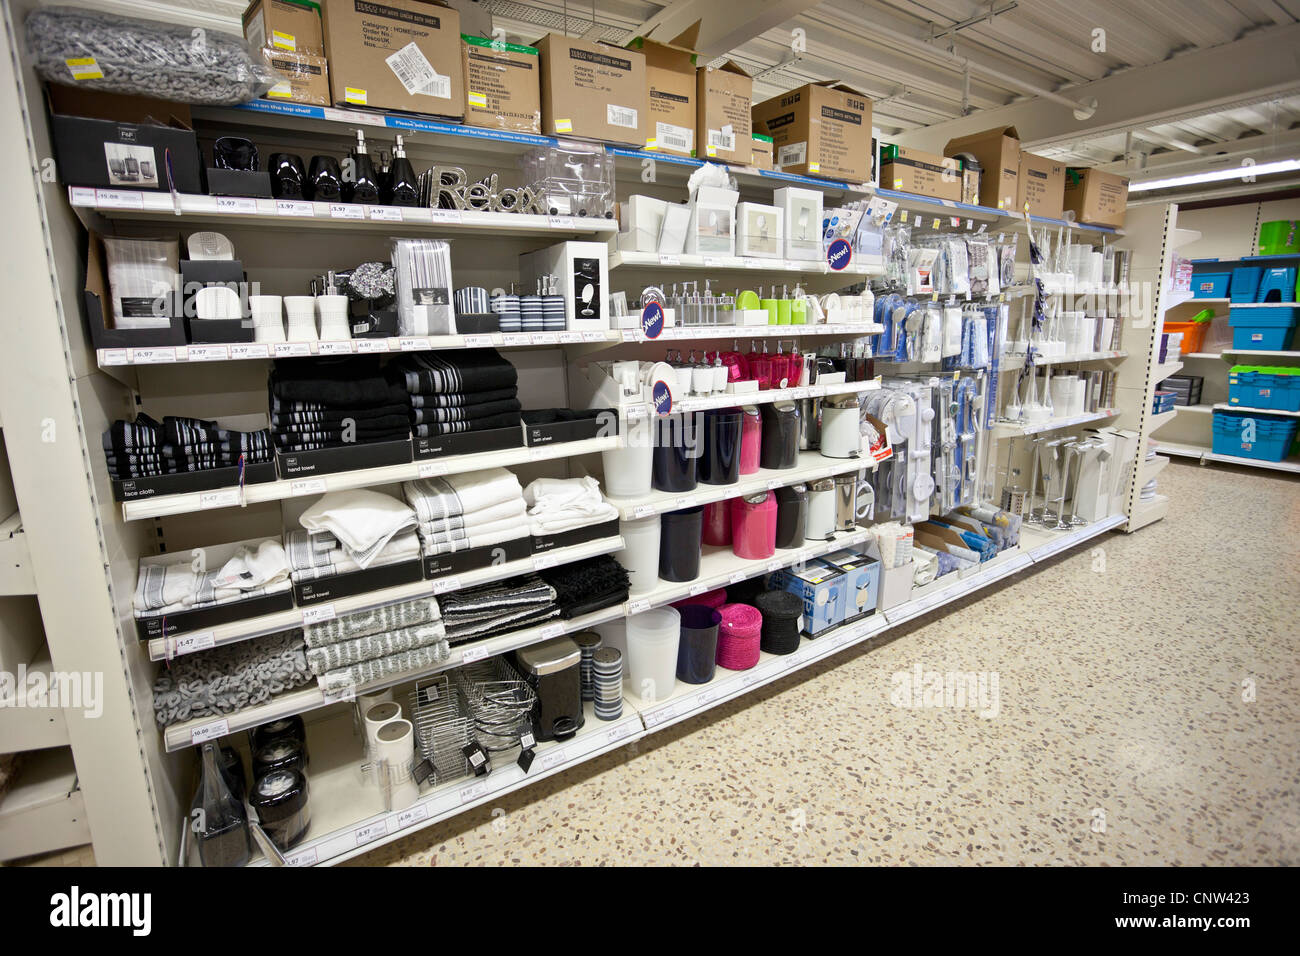 bathroom accessories and toweling shelves of a shop london england uk stock